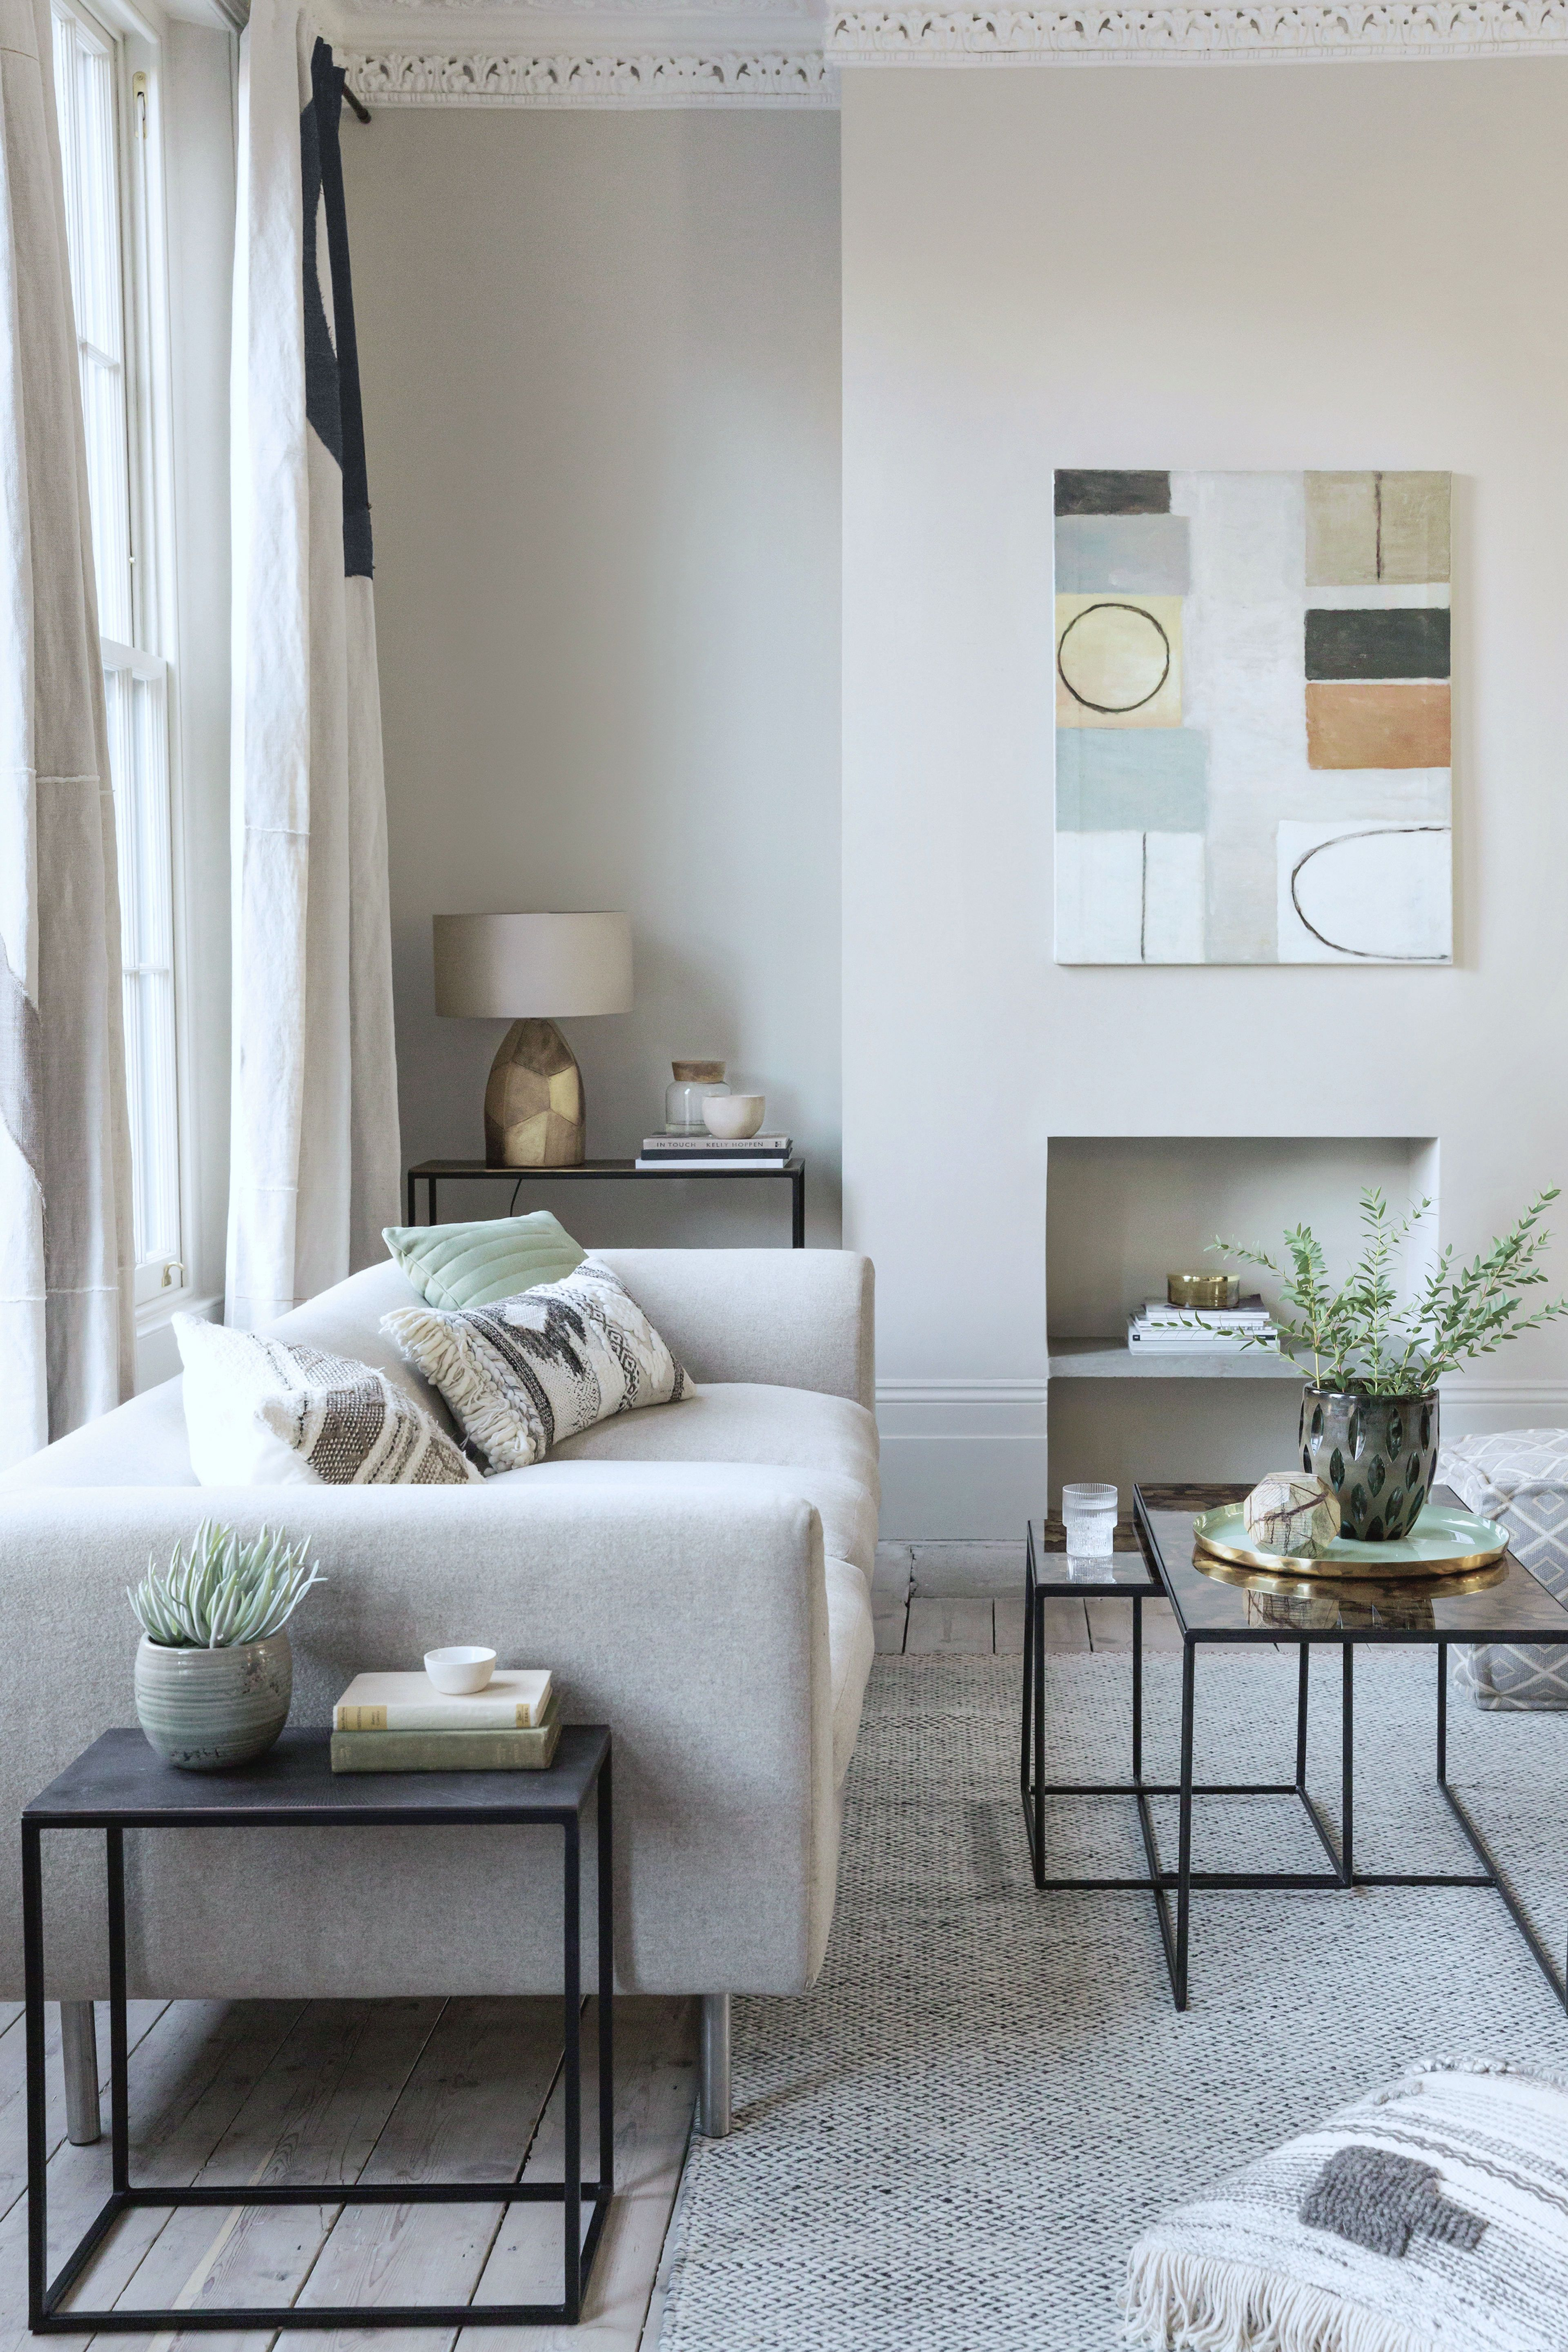 Simple Living Room Interior Design: 9 Simple Ways To Style The Minimal Interior In 2019